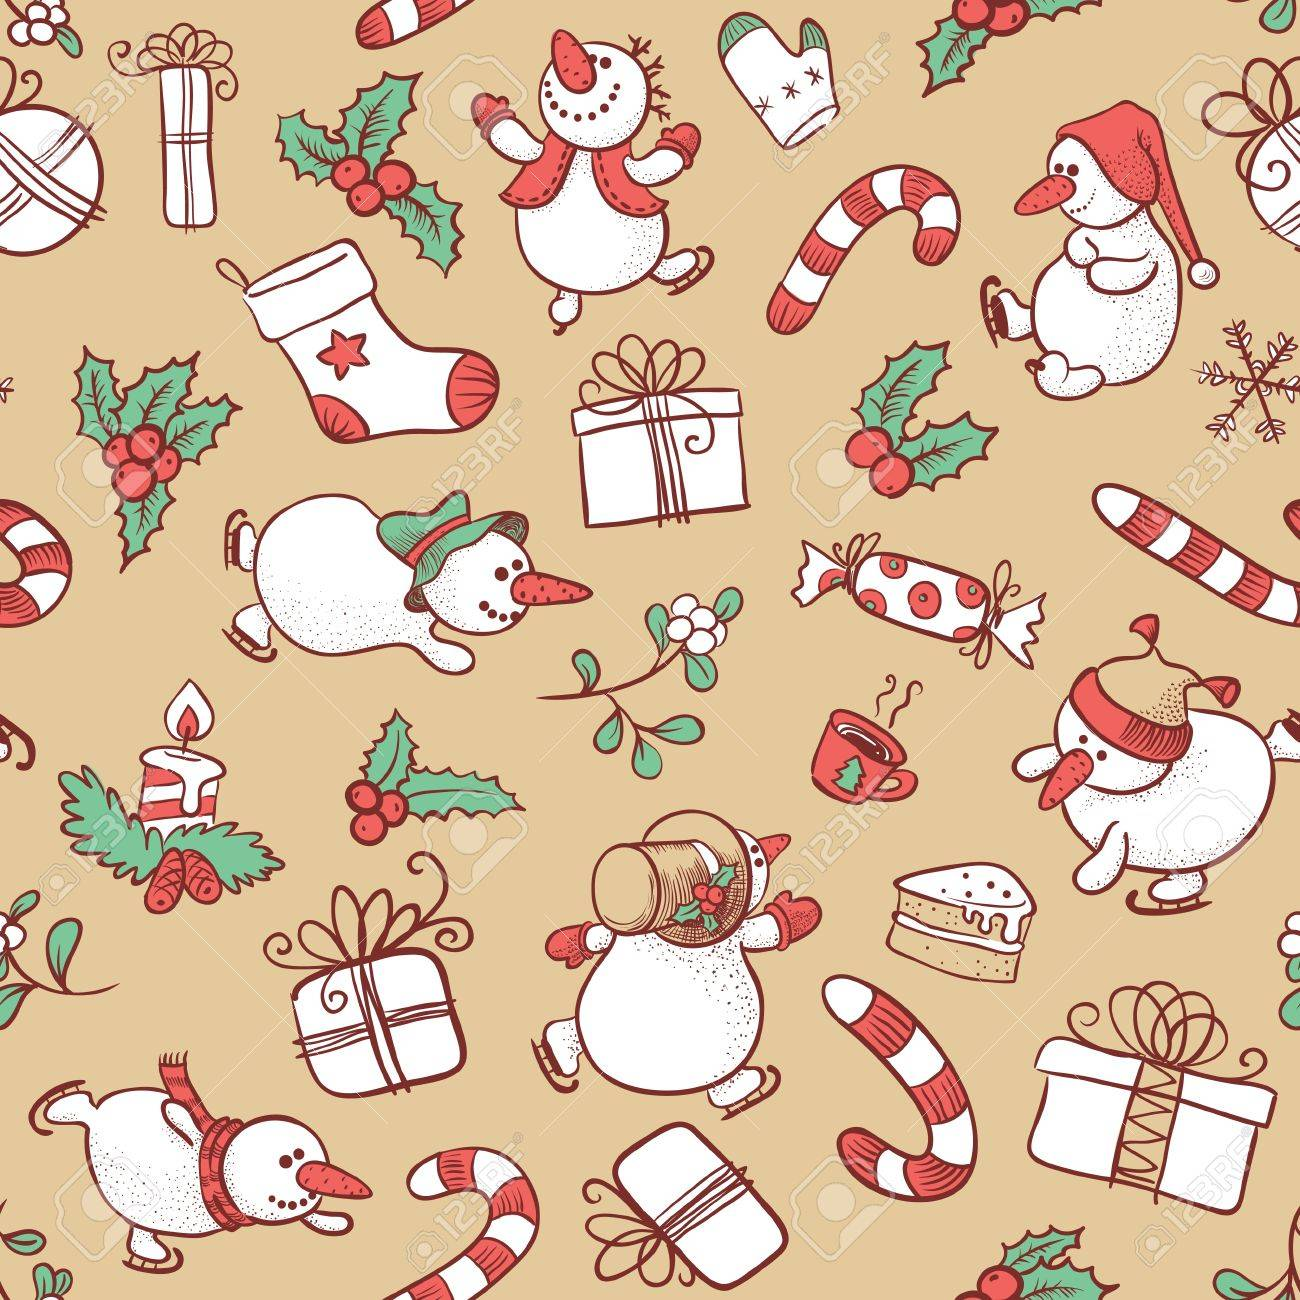 Doodle Christmas seamless with Snowman Stock Vector - 16407042